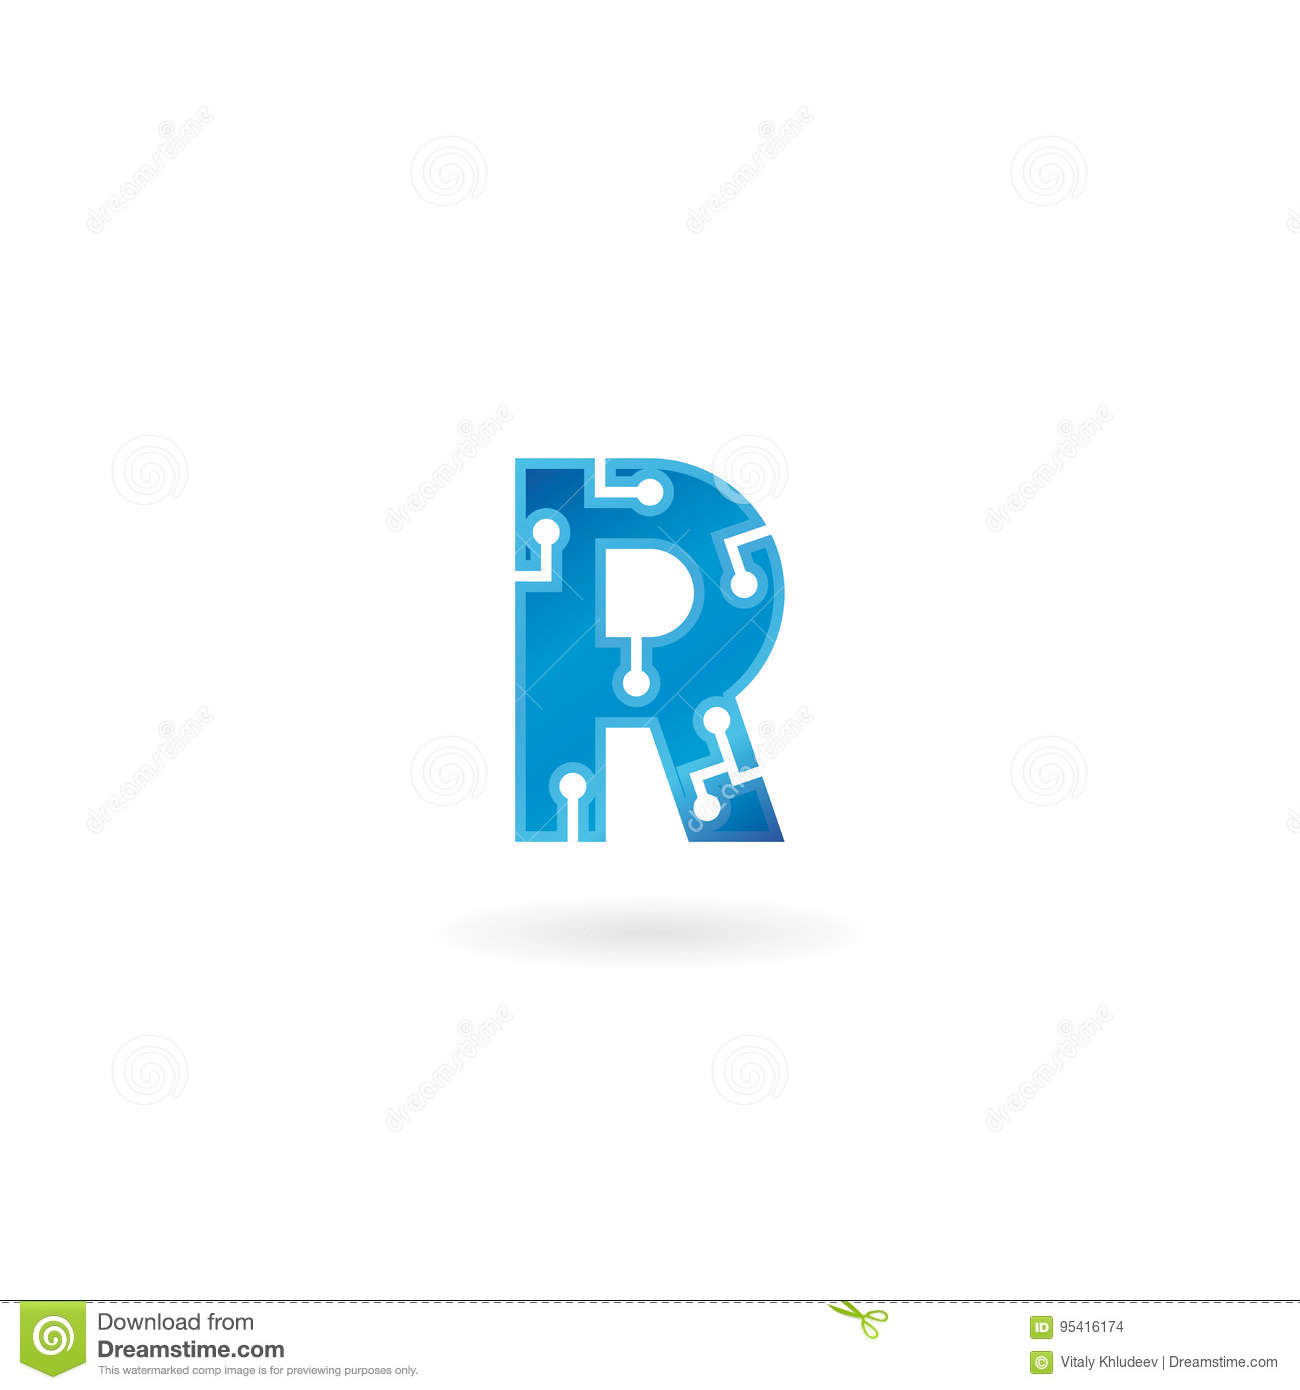 Letter R icon. Technology Smart logo, computer and data related business, hi-tech and innovative, electronic.